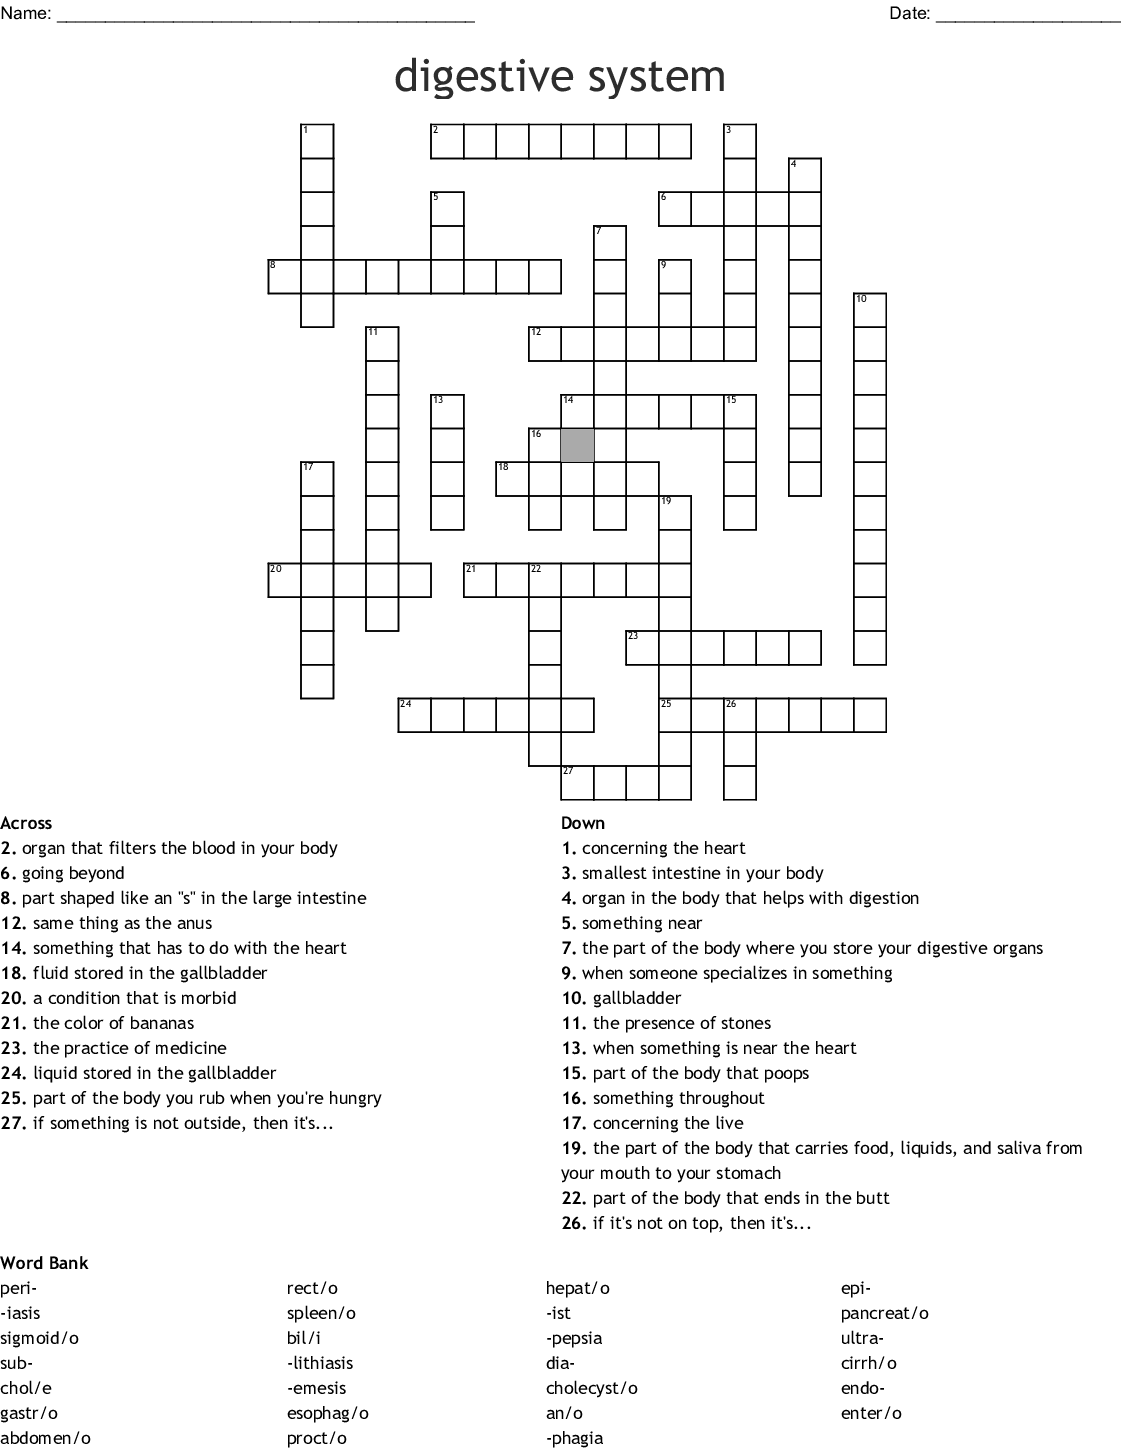 Digestive System Crossword Puzzle